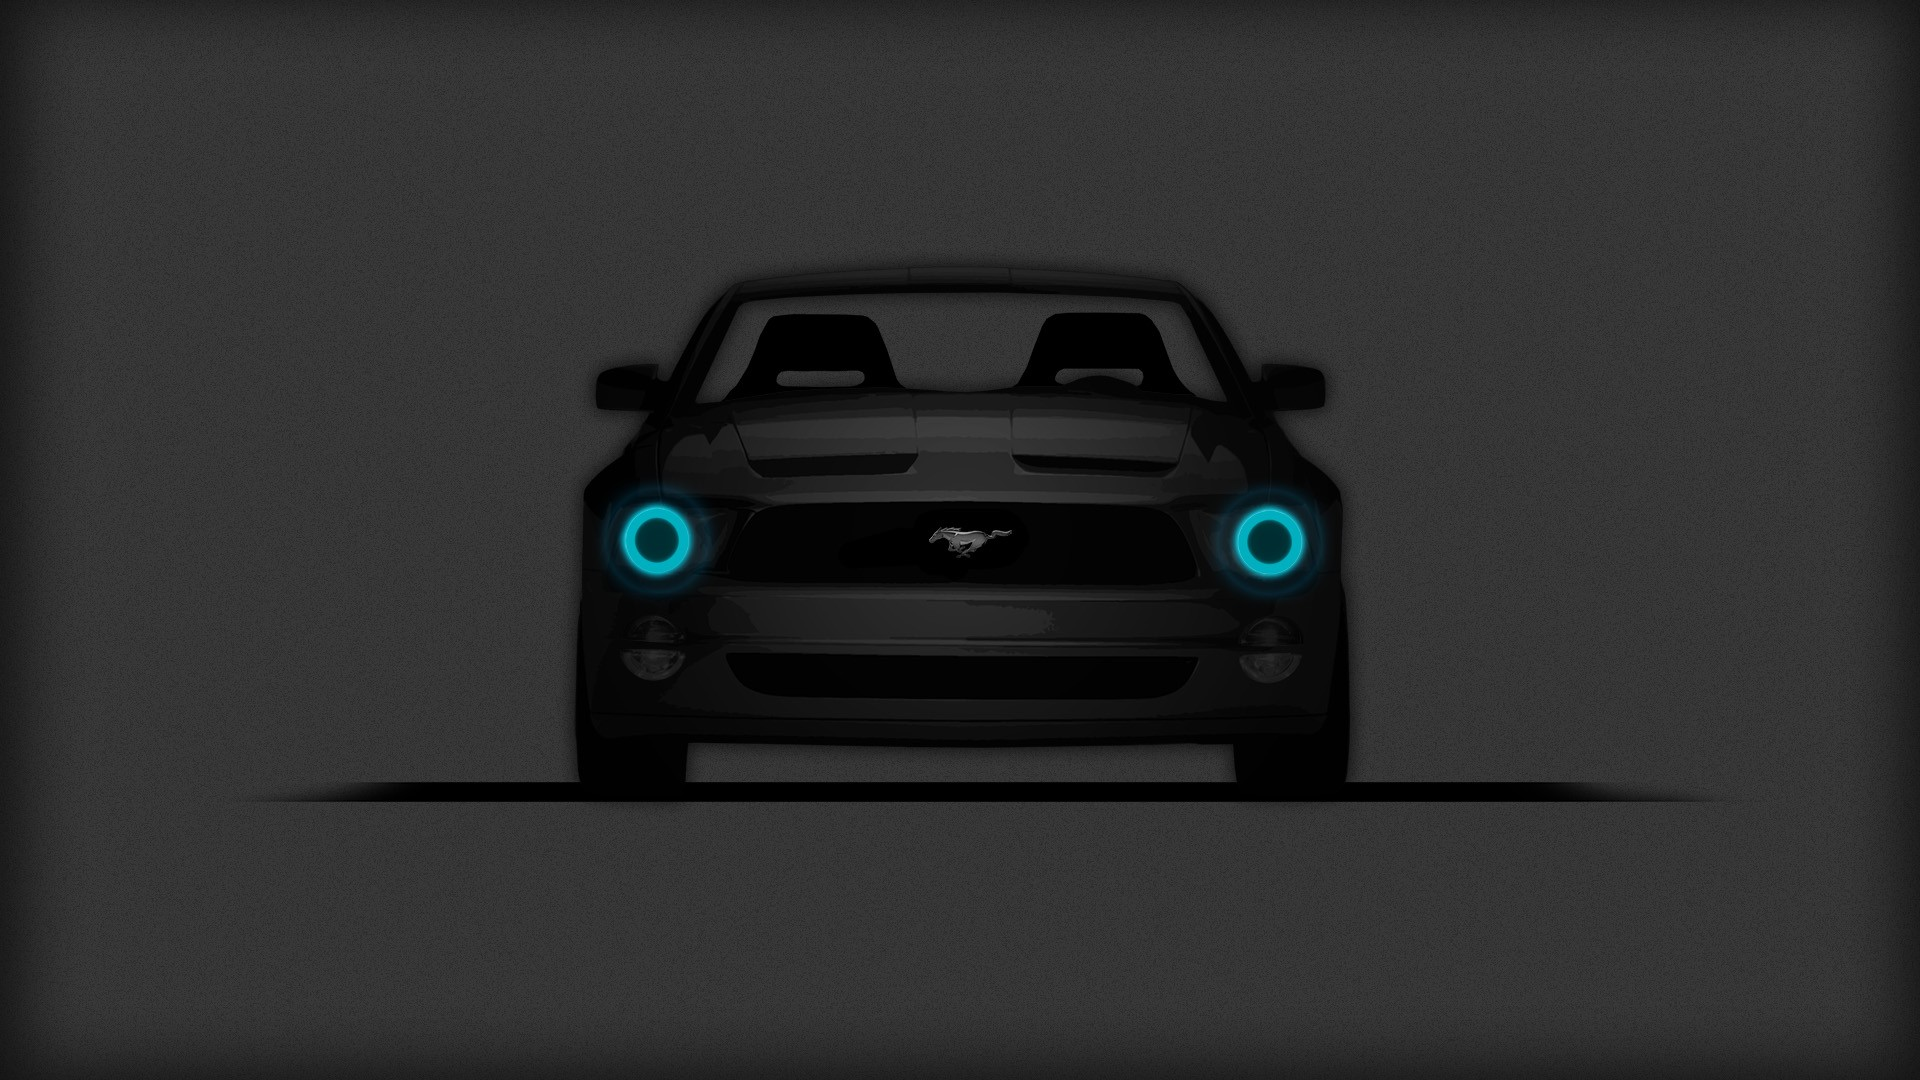 3840x1080 Wallpaper Classic Car Ford Mustang Ford Mustang Gt Car Minimalism Muscle